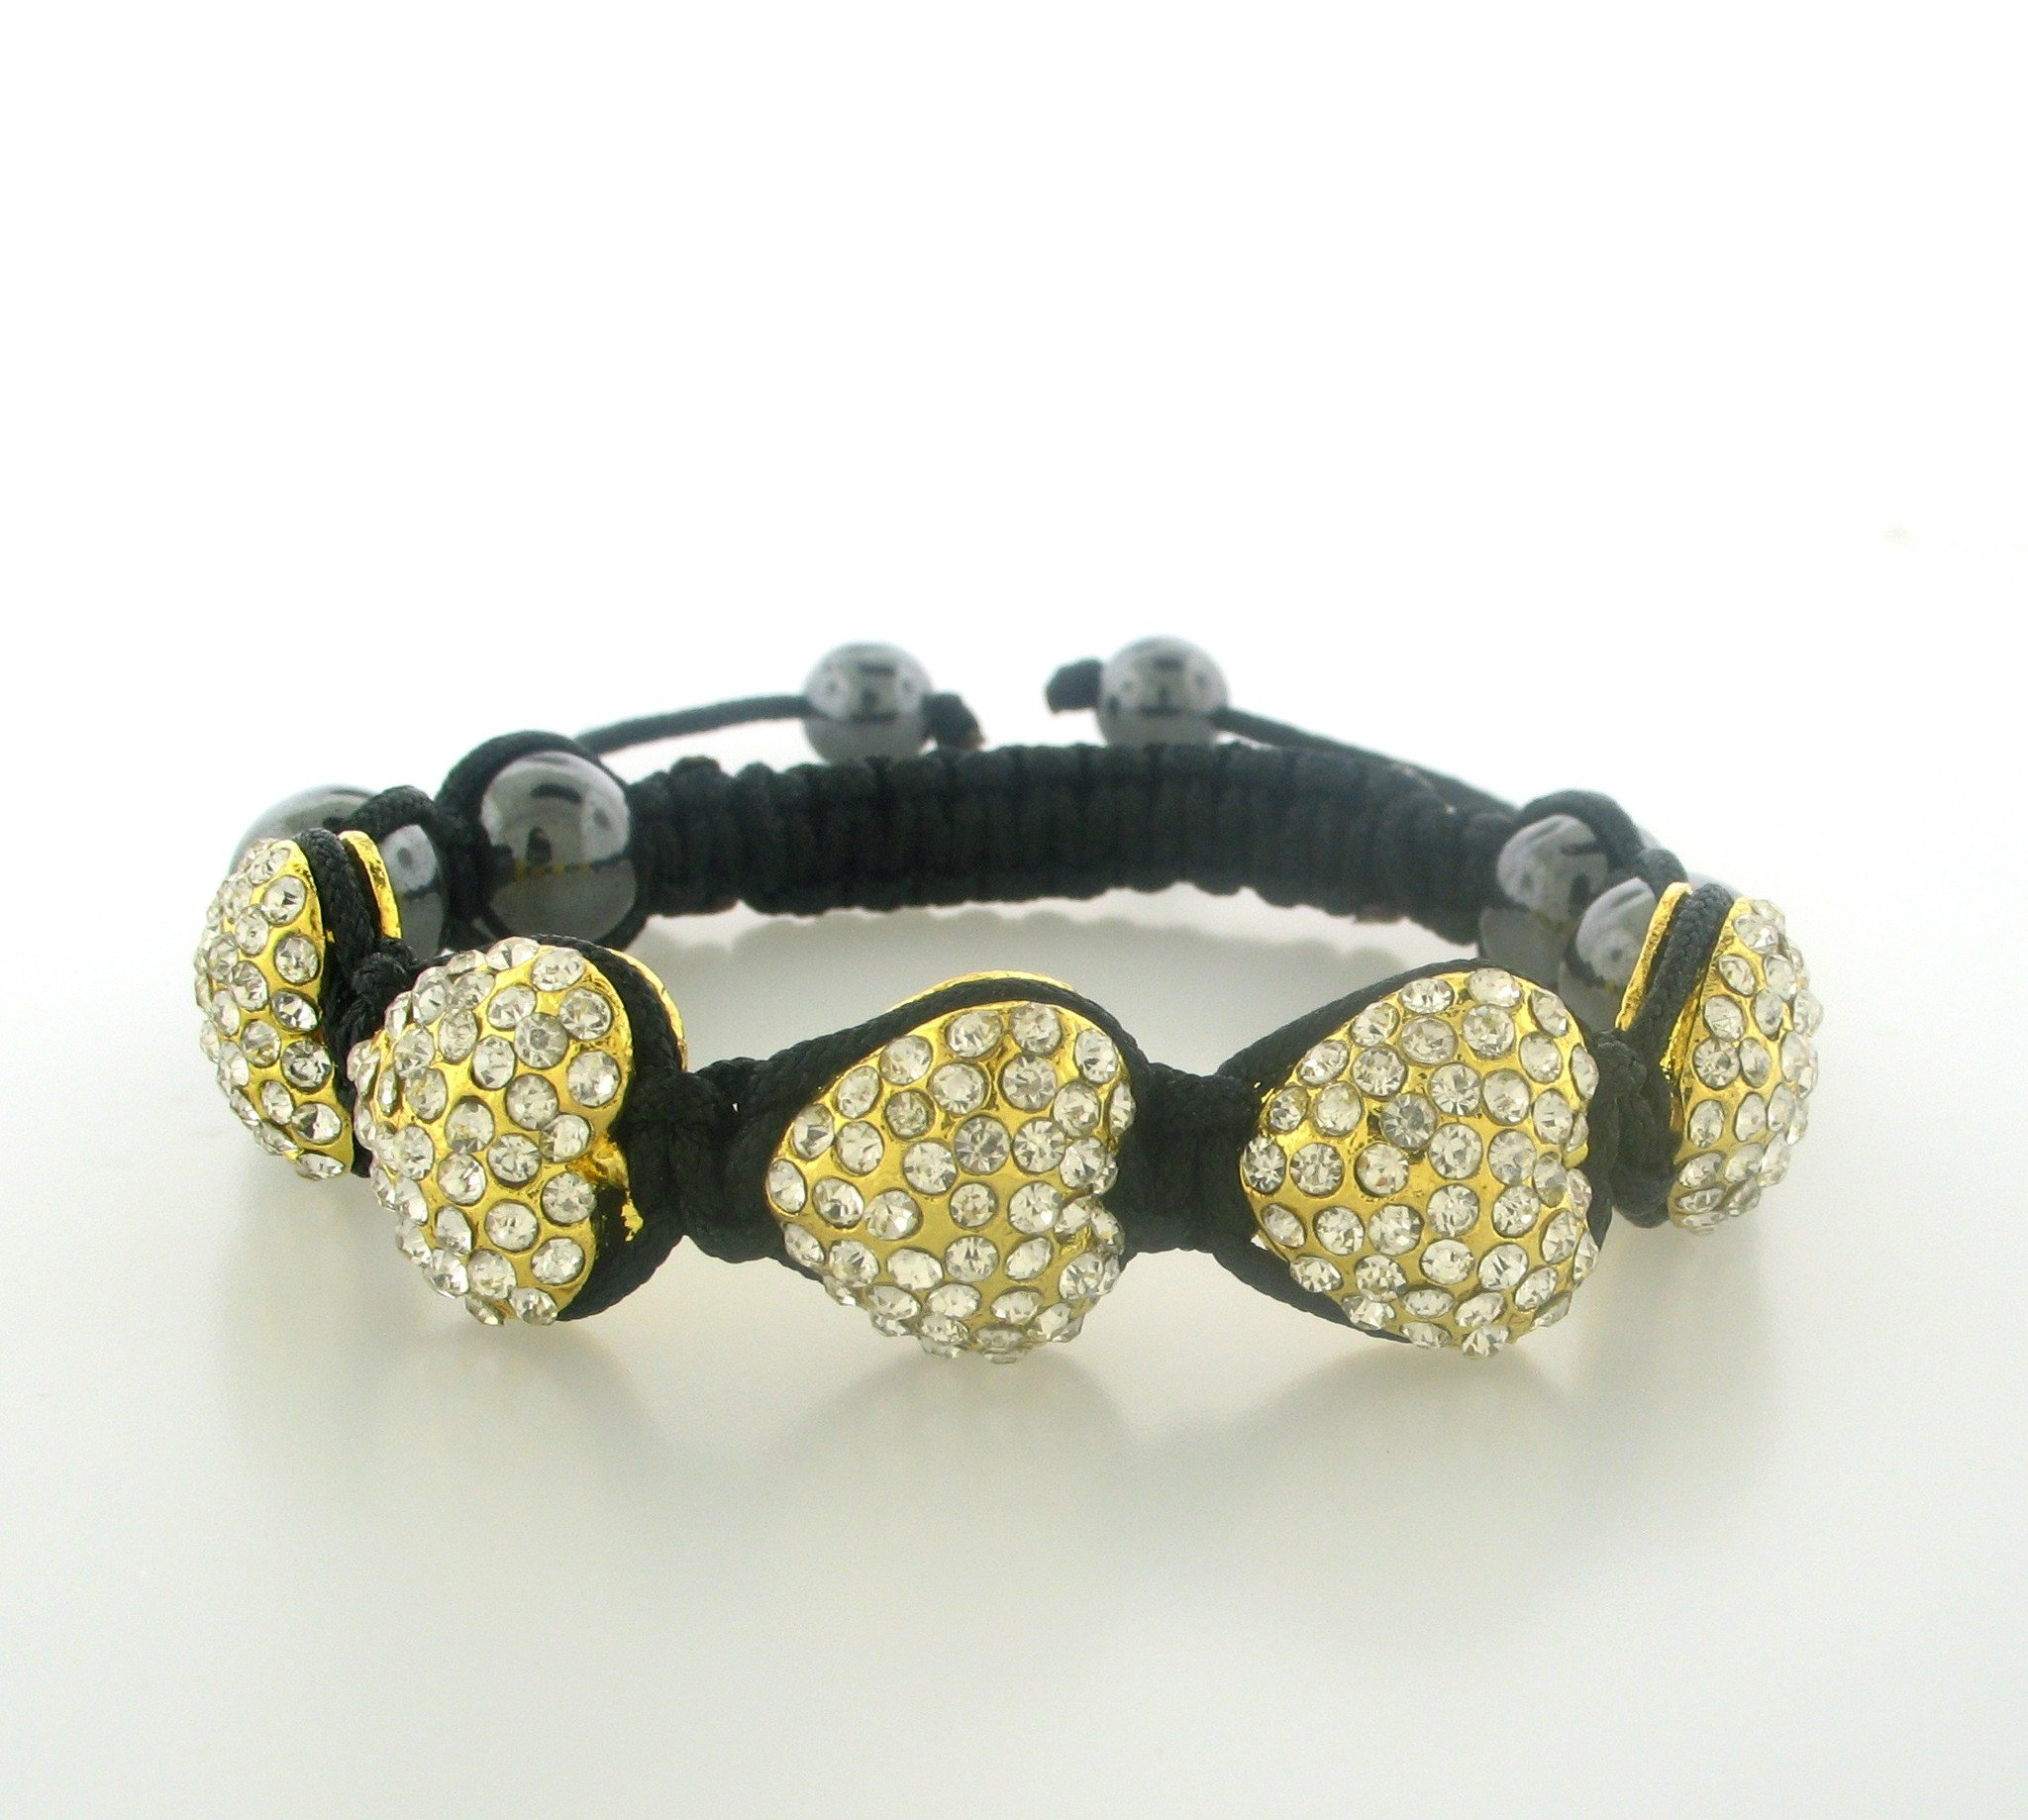 Make Quarantine Fun! Jewelry Making Using Shamballa Beads